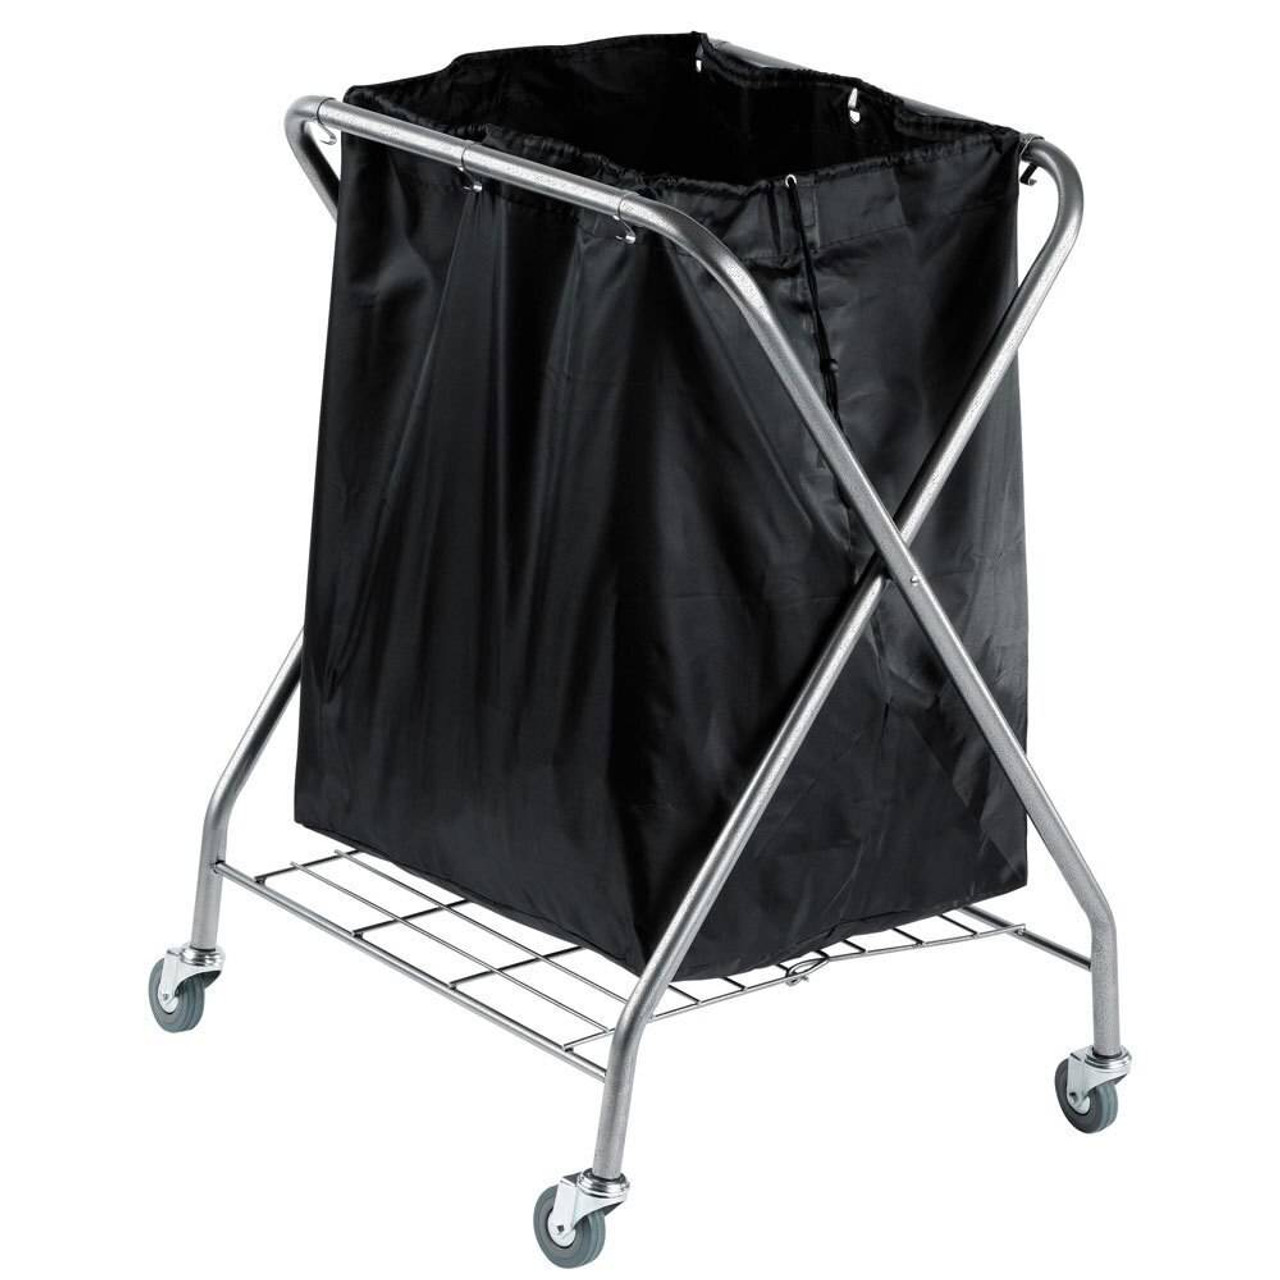 HOSPITALITY 1 SOURCE HOSPITALITY 1 SOURCE or X DUTY POWDER COAT LAUNDRY HAMPER or PLATFORM and BLACK BAG or 1 PER CASE